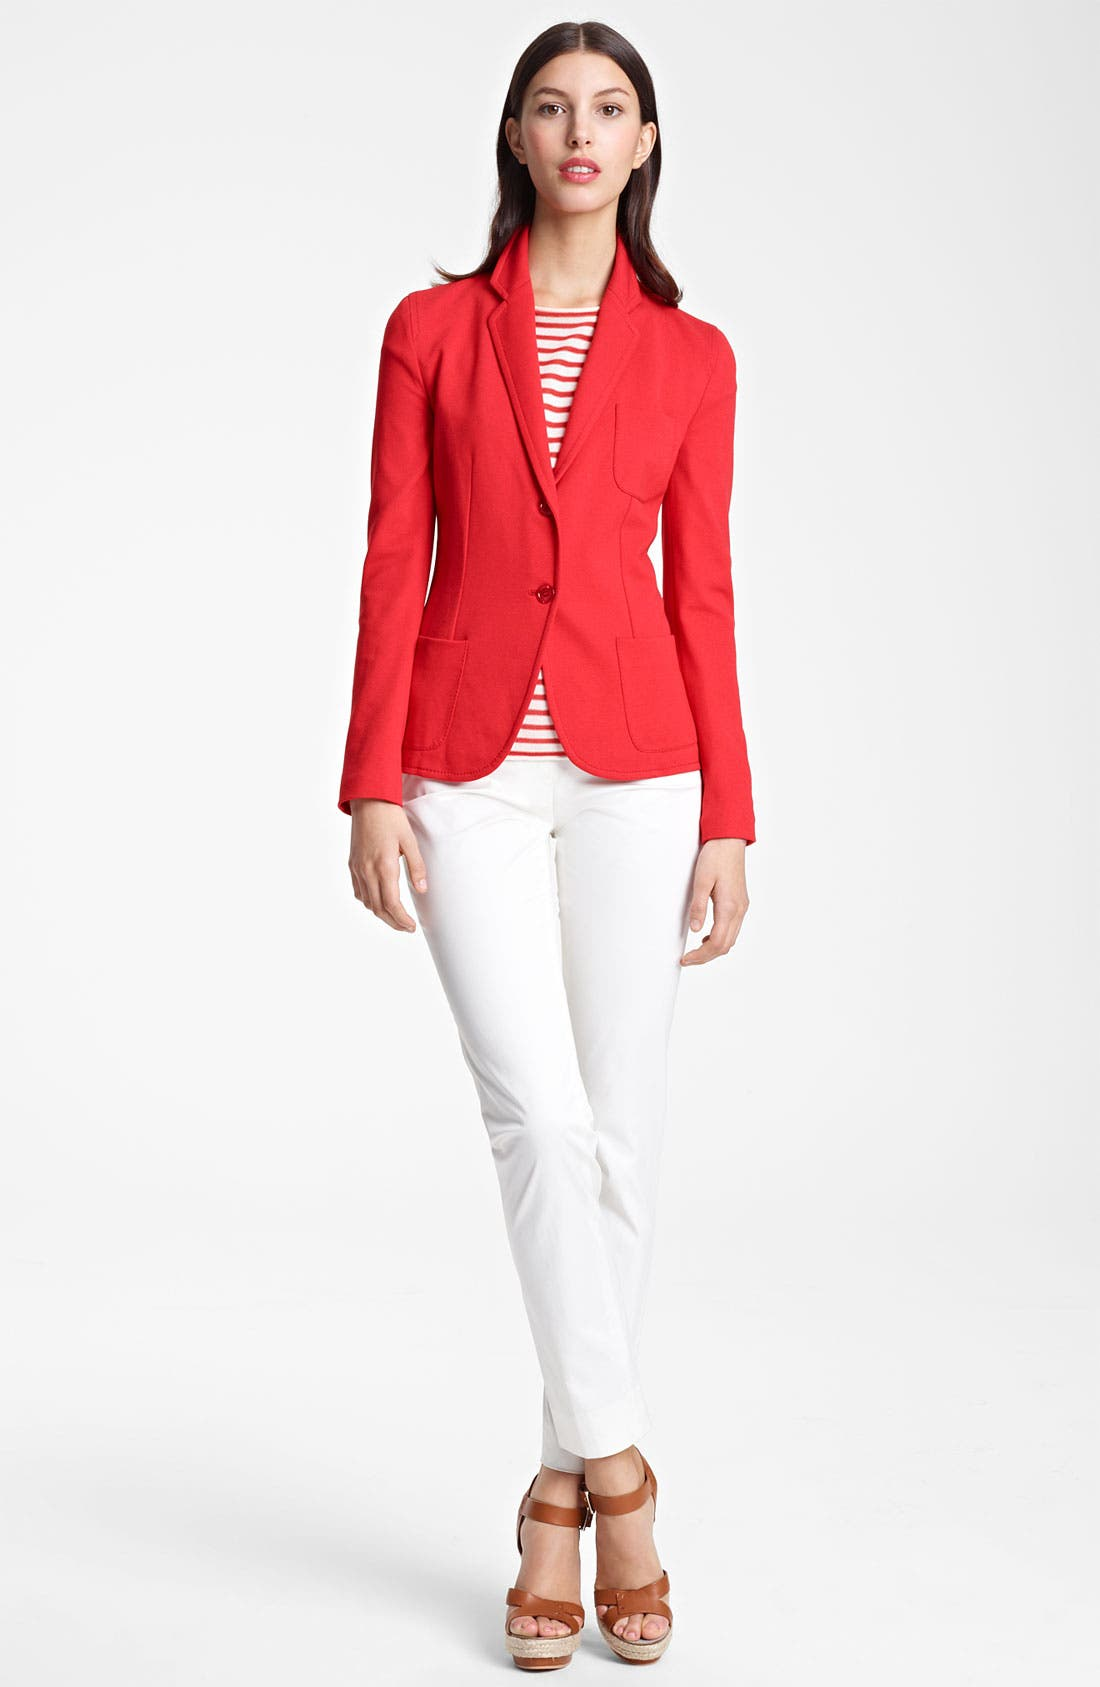 Alternate Image 1 Selected - Armani Collezioni Jacket, Top & Pants